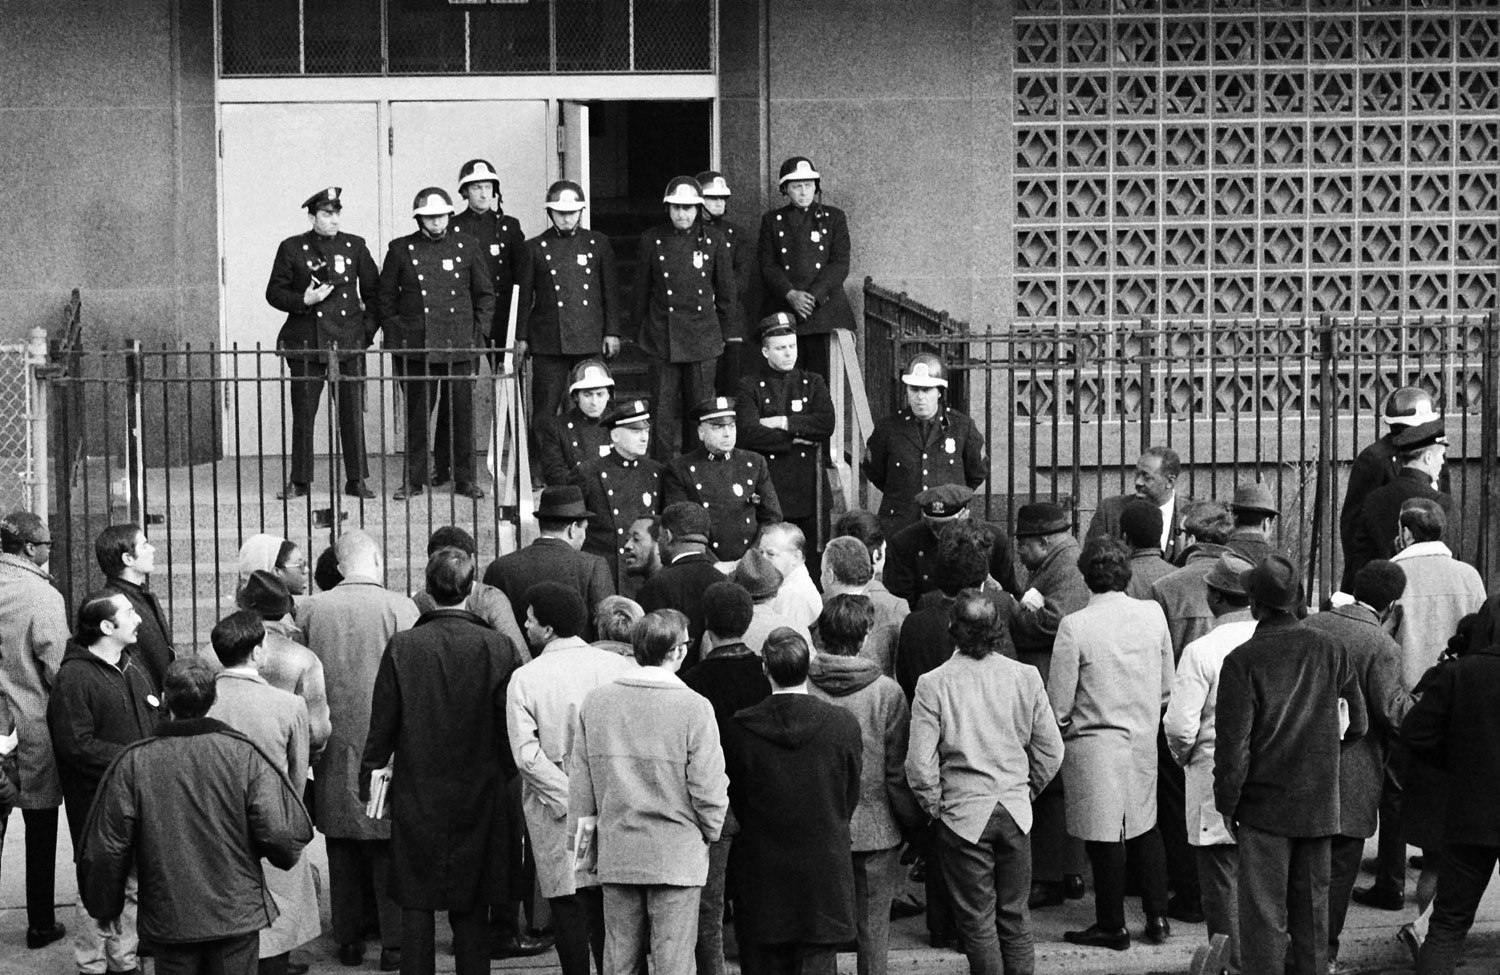 Police in Ocean Hill Brownsville during the 1968 dispute.